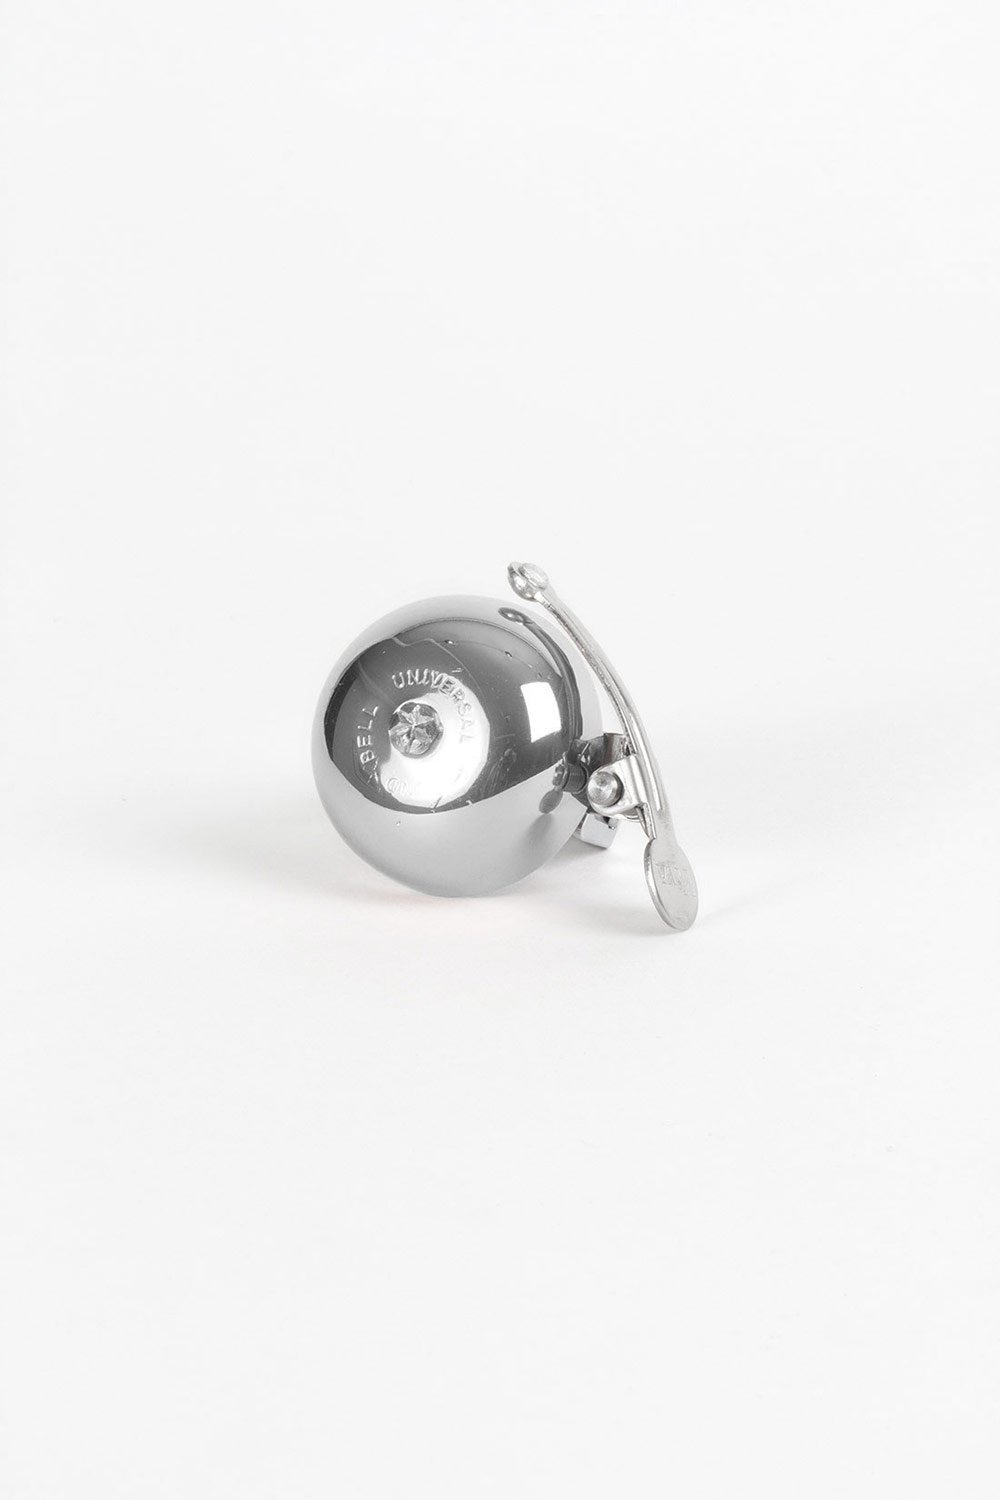 Viva Bicycle Bell-28359